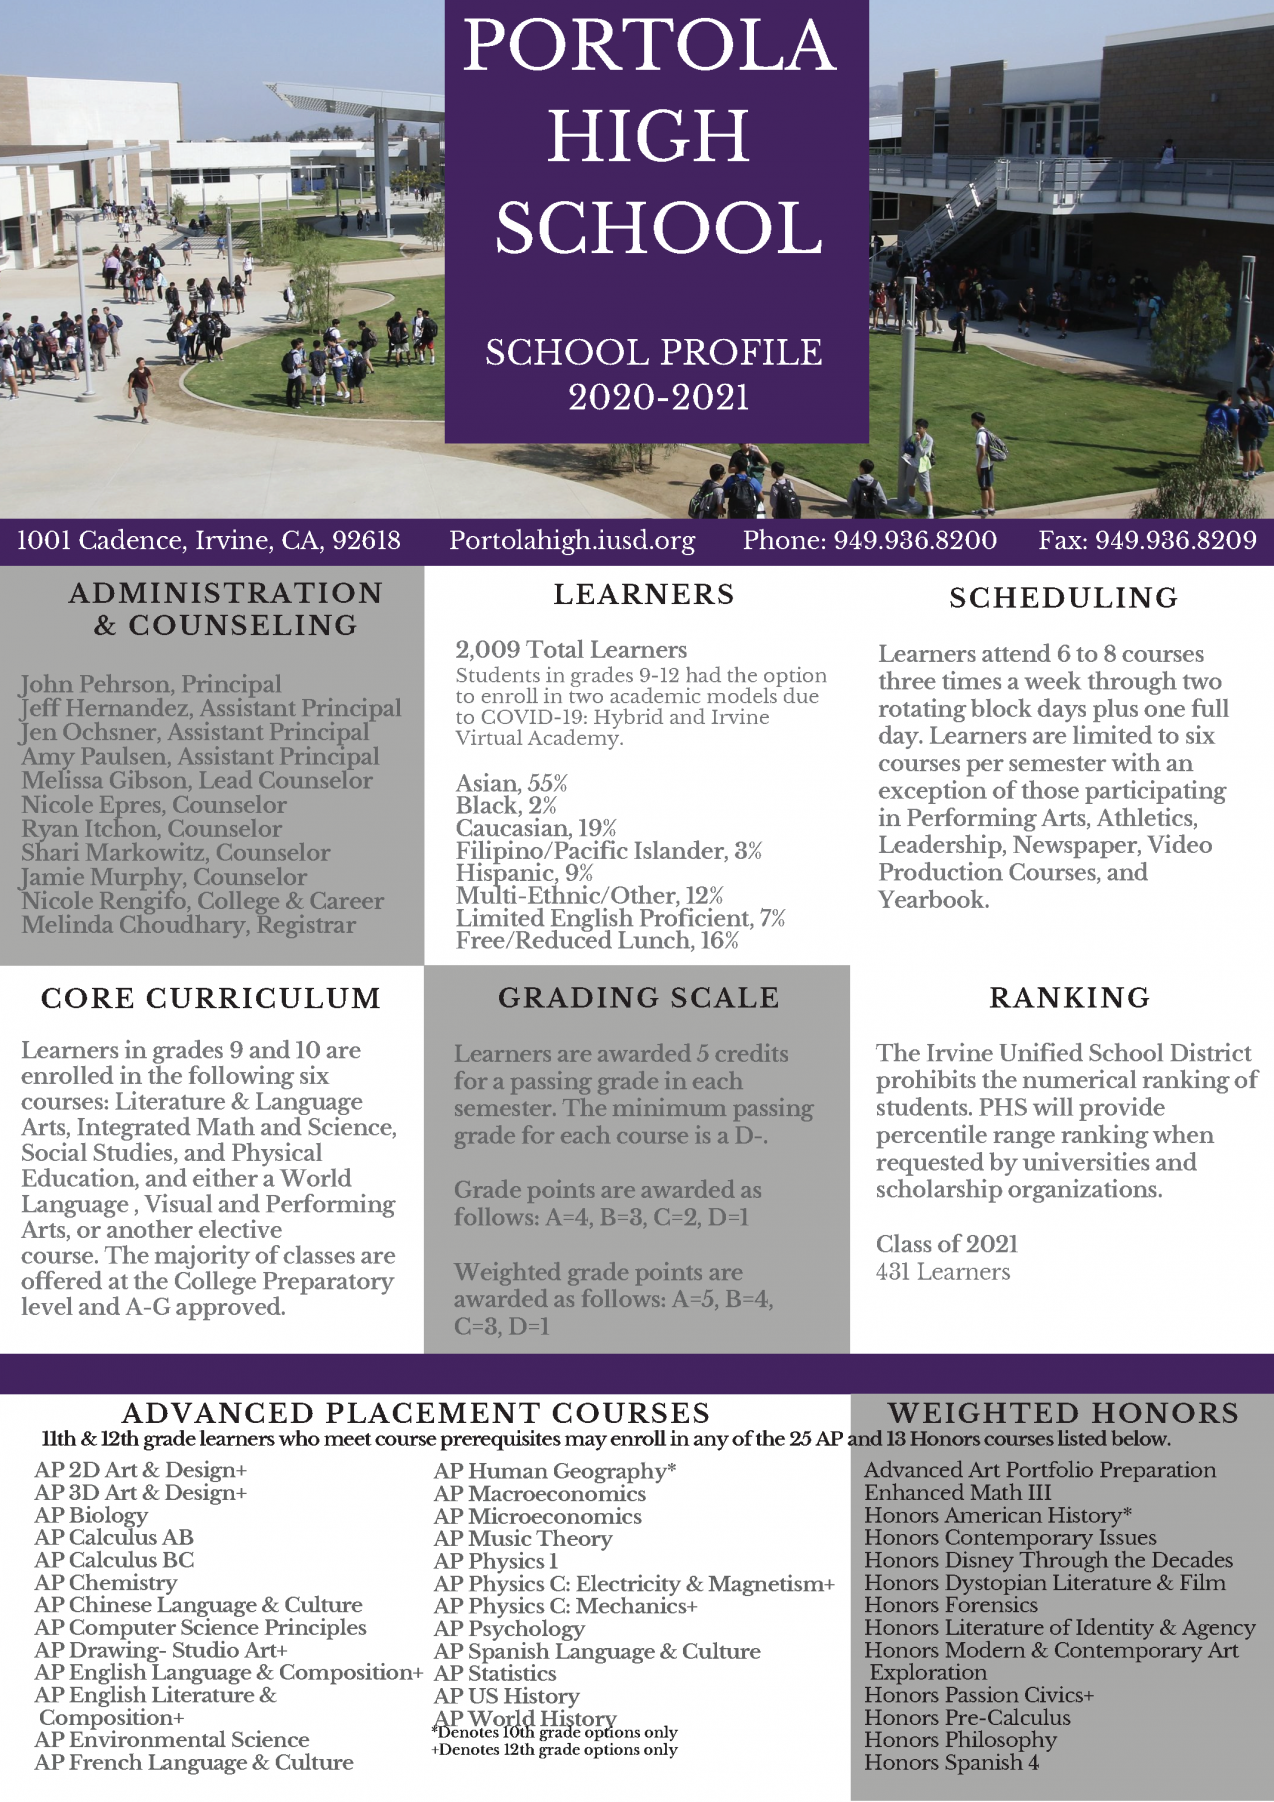 School profile 1